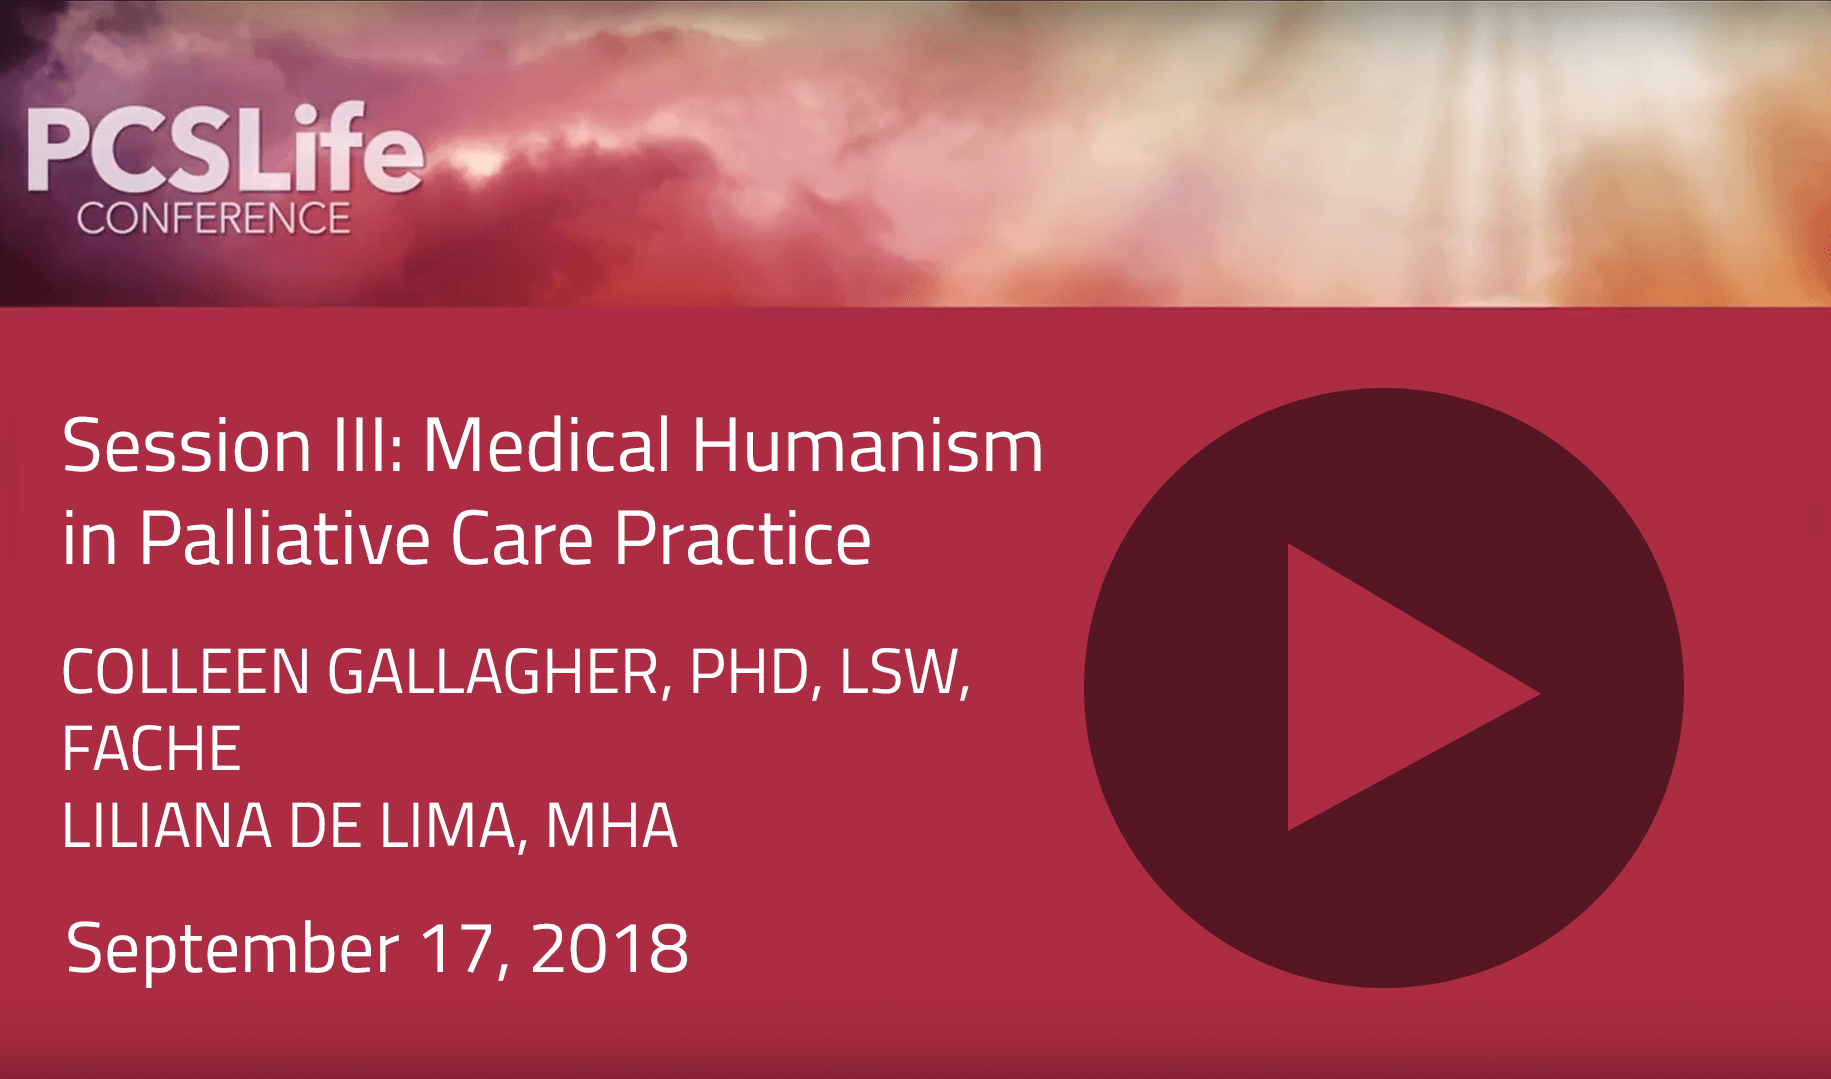 Session Three: Medical Humanism in Palliative Care Practice by Colleen Gallagher and Liliana de Lima